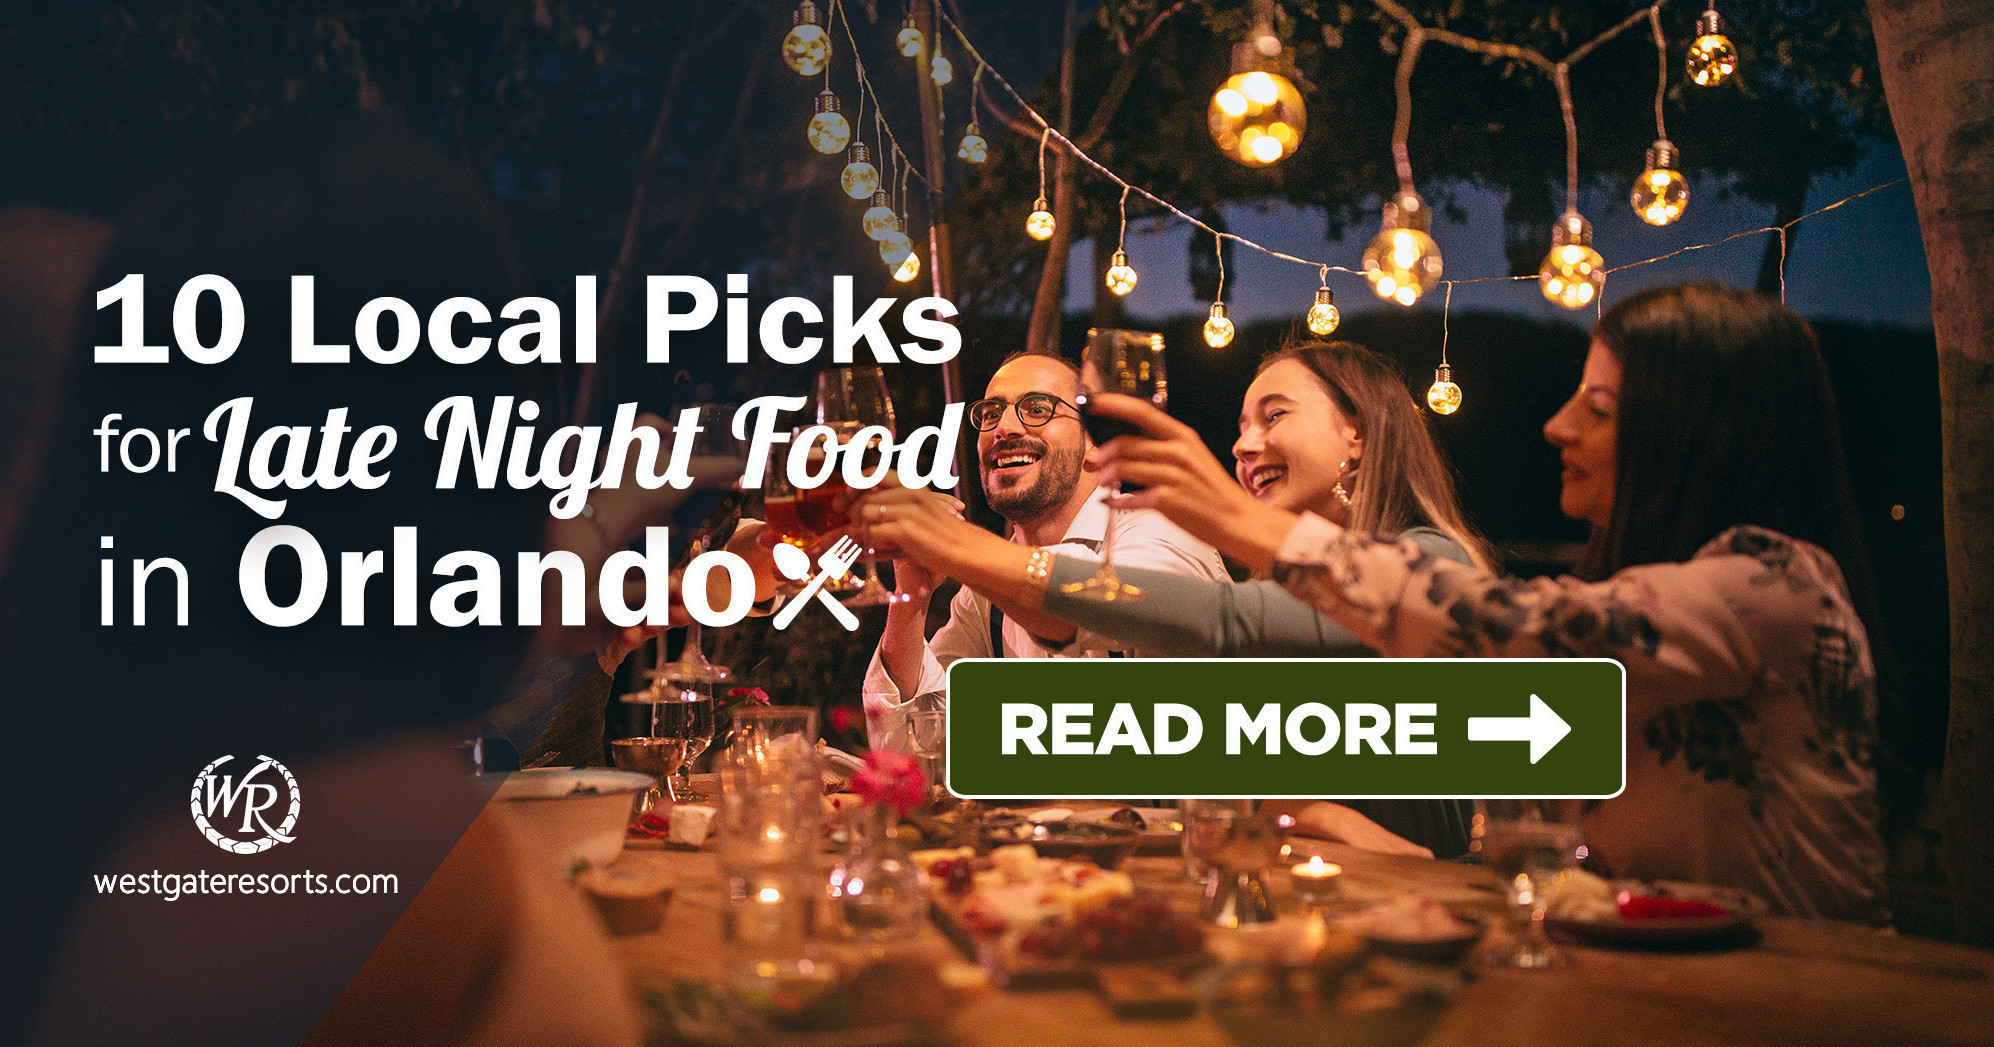 10 Local Picks for Late Night Food in Orlando | Westgate Travel Blog